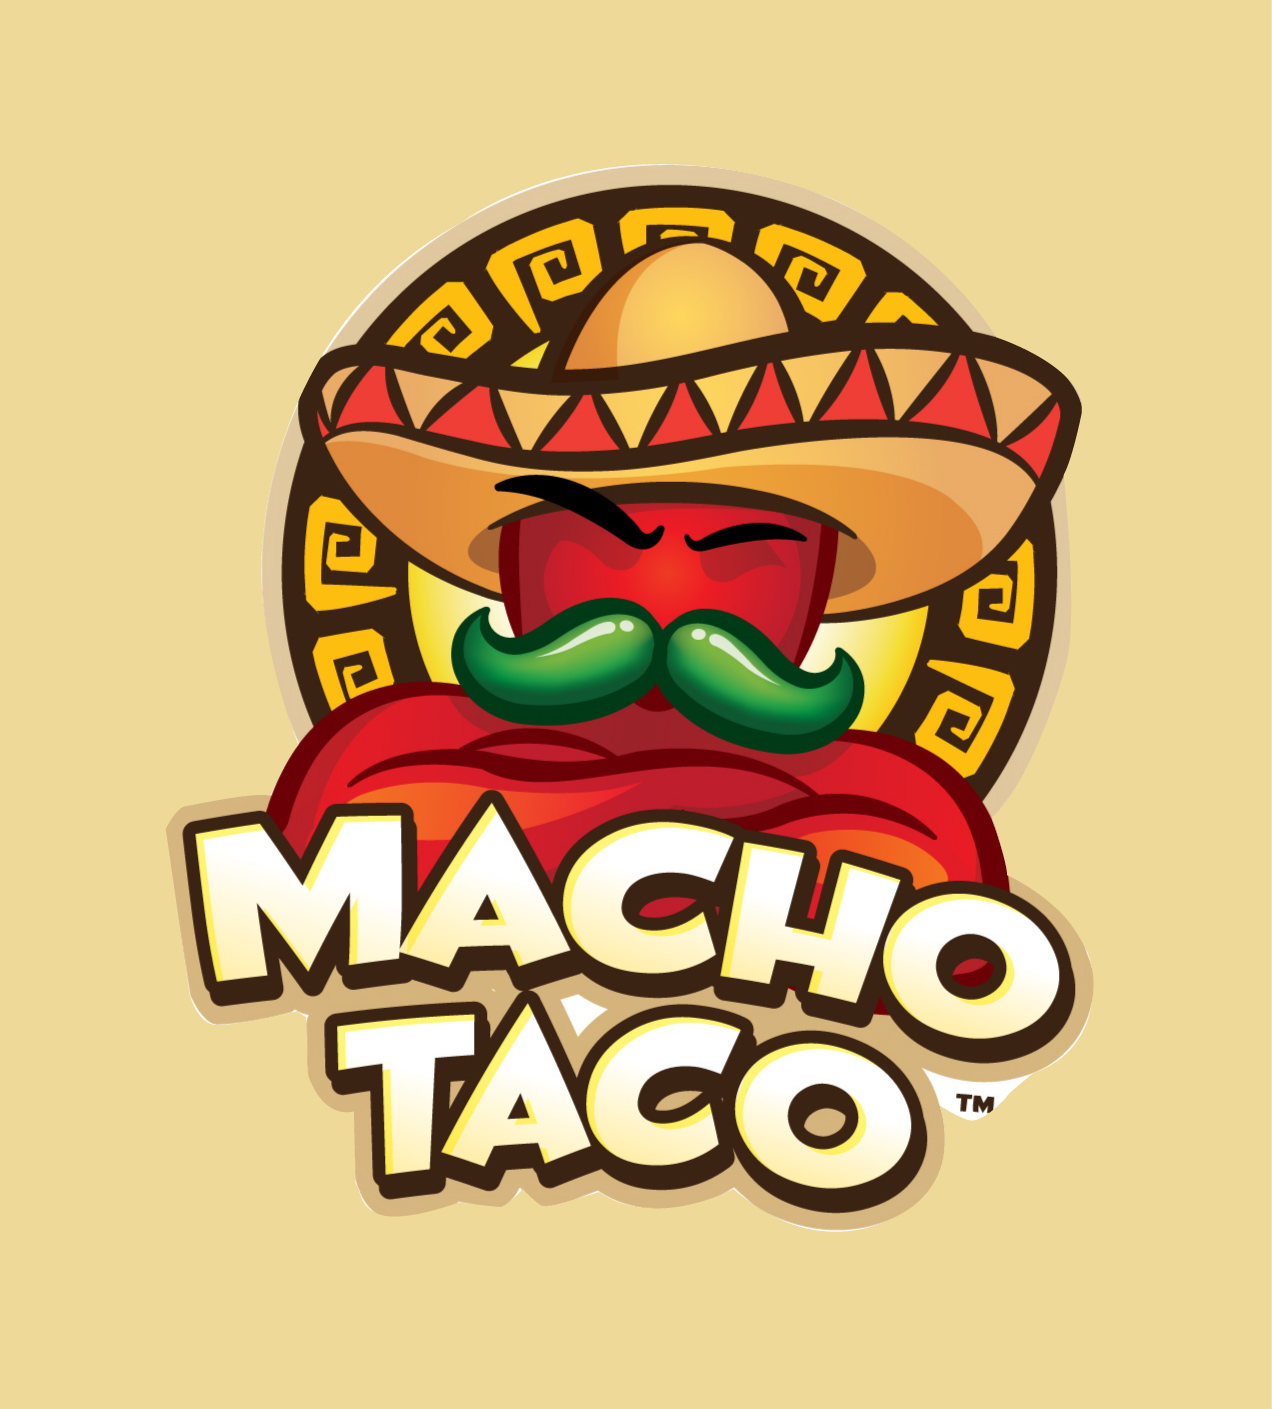 what is the font of macho taco?